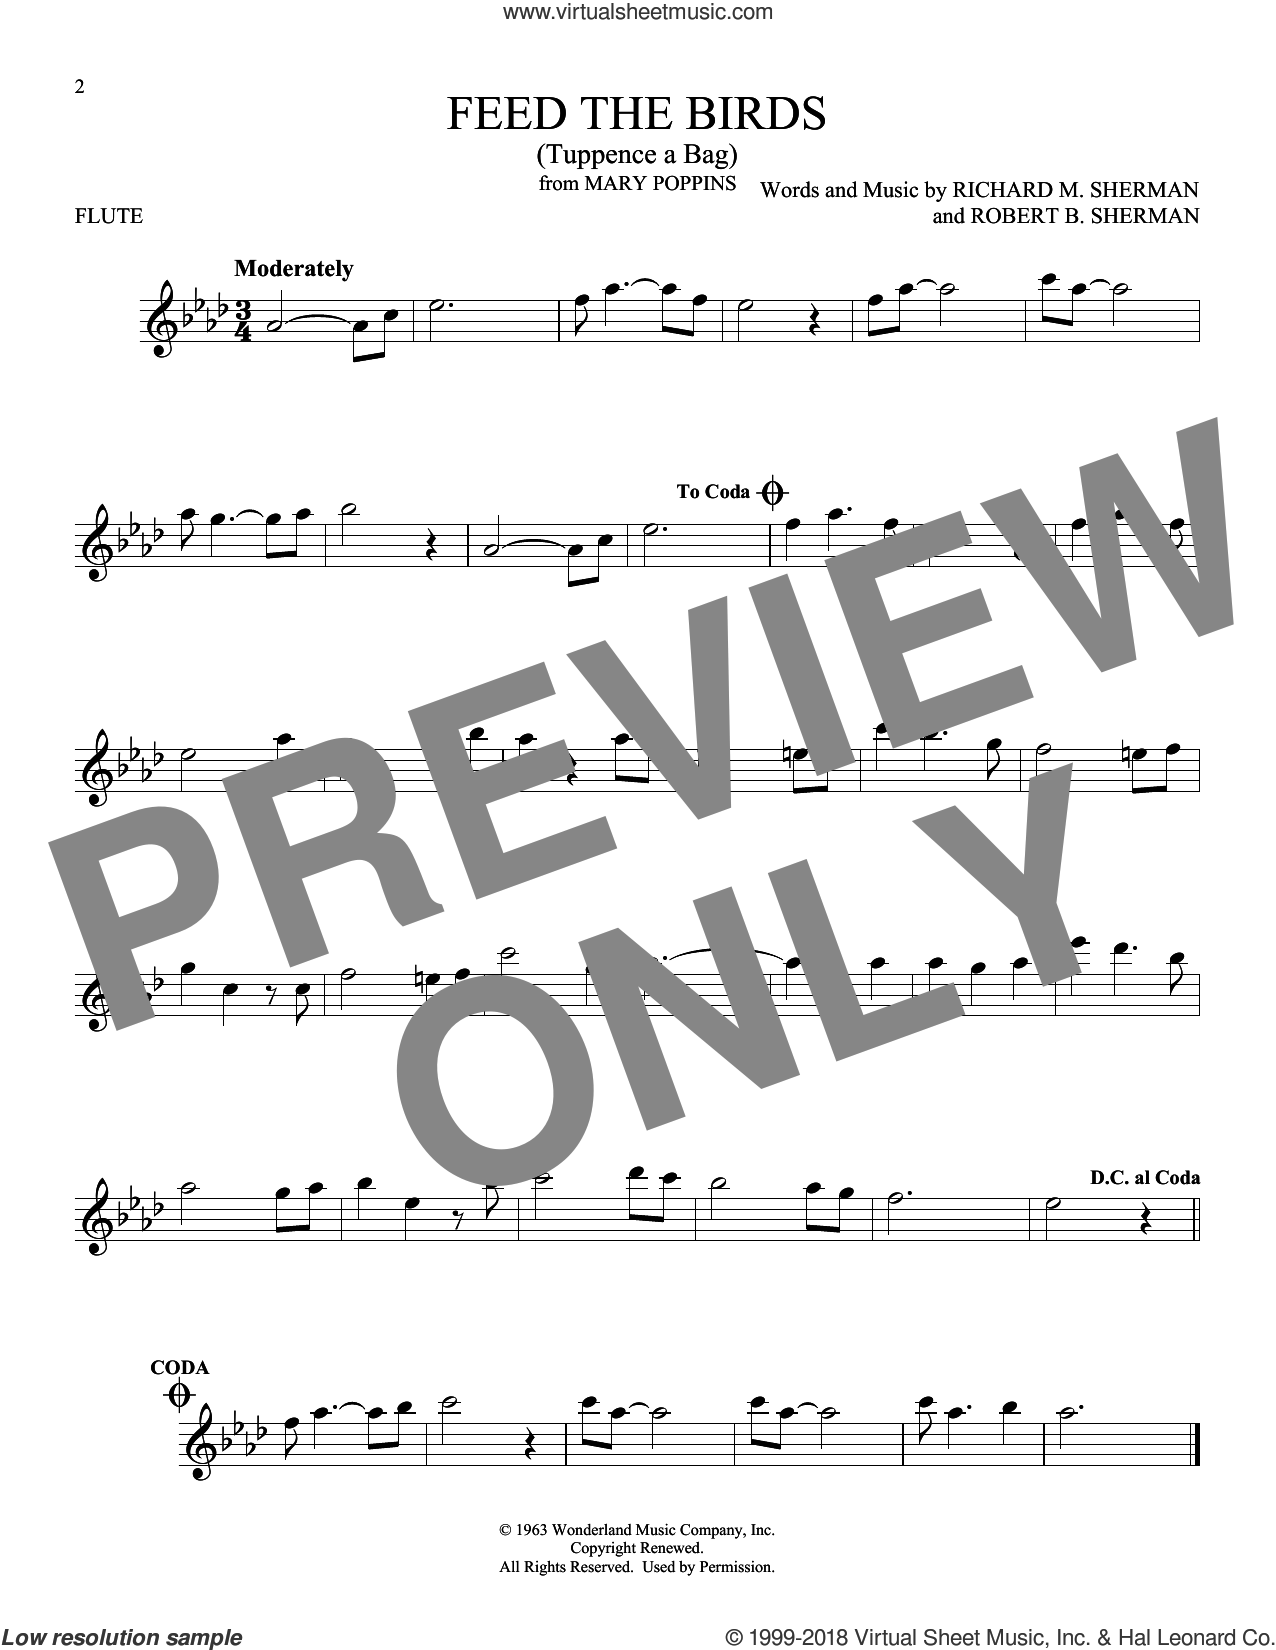 Feed The Birds (Tuppence A Bag) sheet music for flute solo by Richard M. Sherman and Robert B. Sherman, intermediate skill level